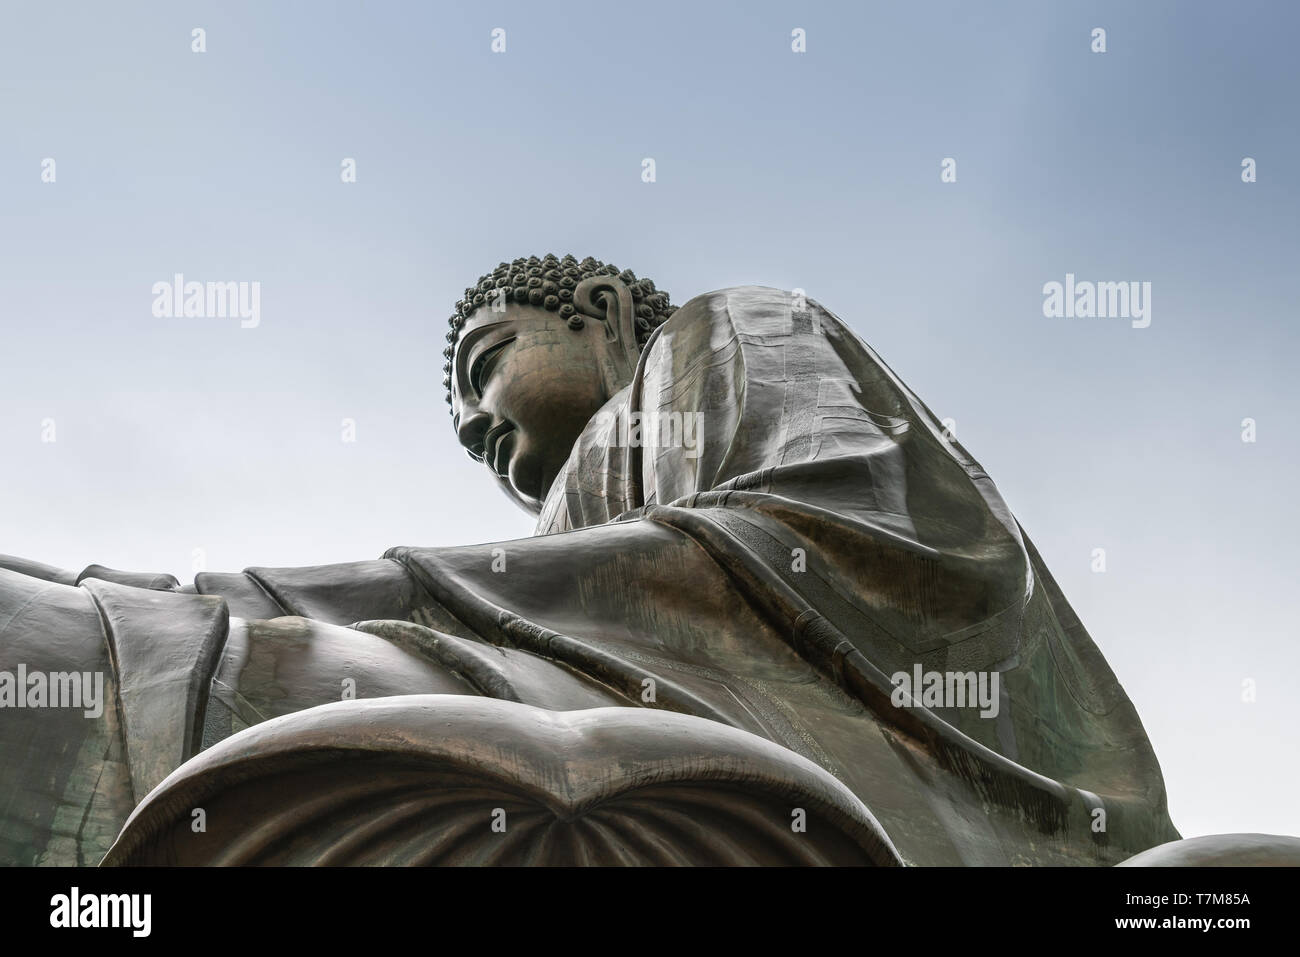 Hong Kong, China - March 7, 2019: Lantau Island. Closeup of Tian Tan Buddha statue from side under showing robe and lotus leaf under light blue sky. - Stock Image